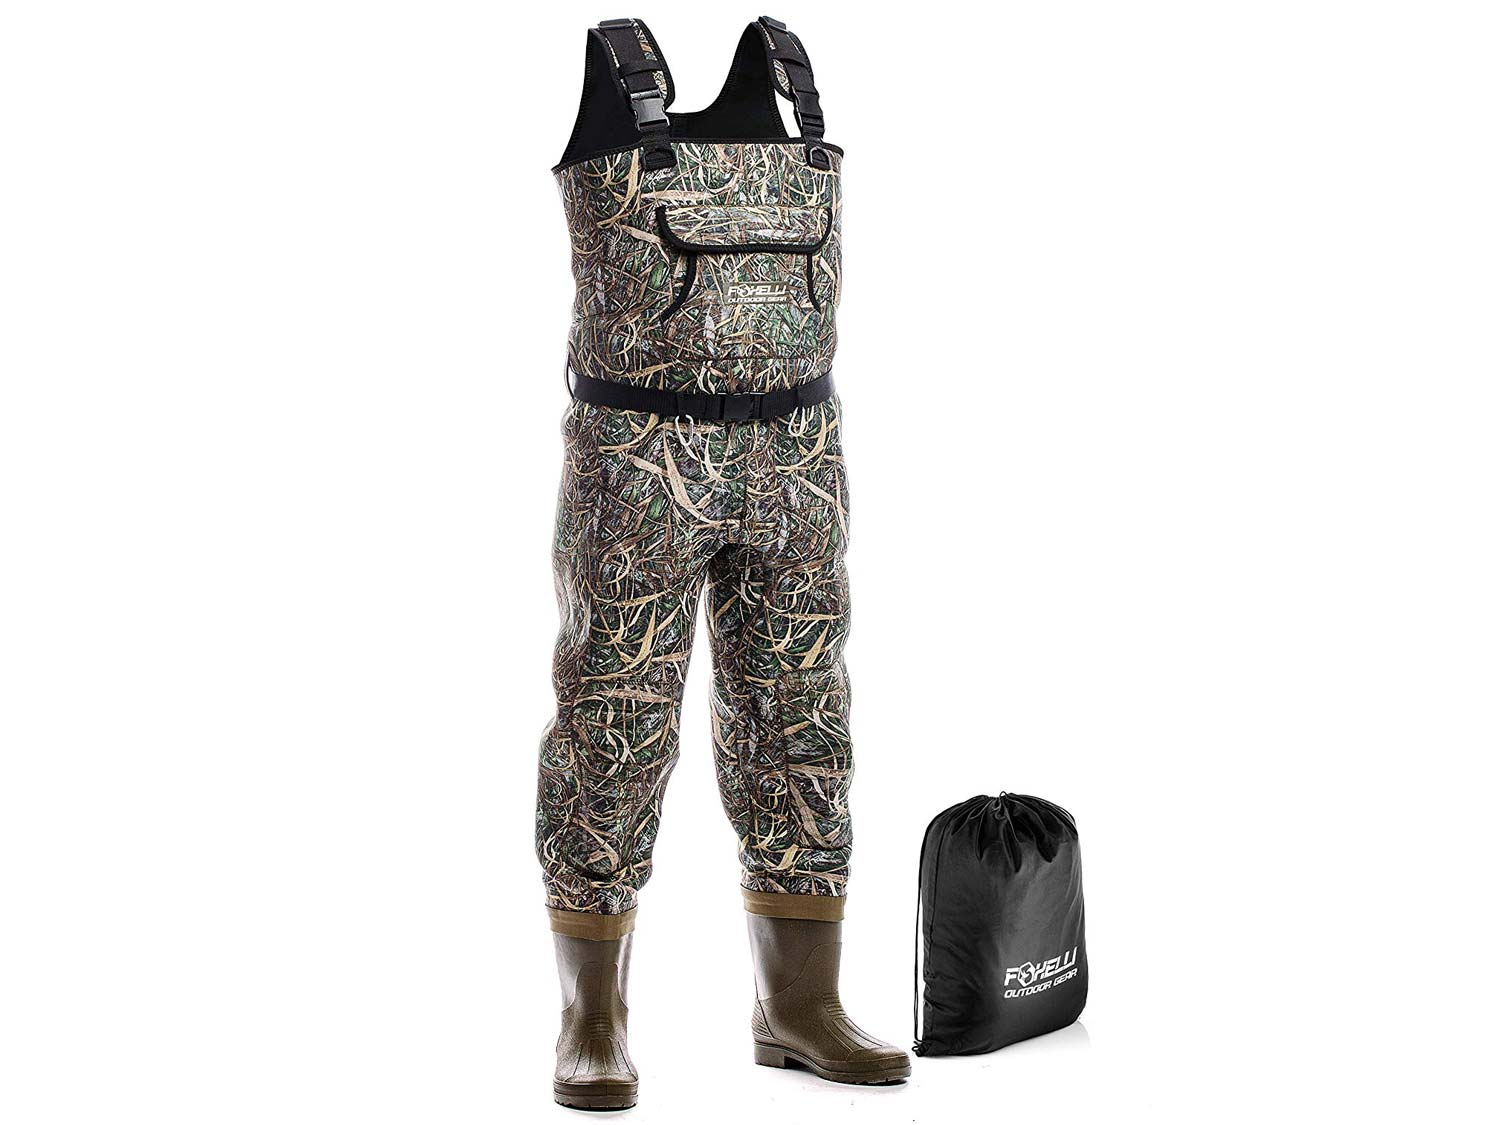 Foxelli Neoprene Chest Waders – Camo Fishing Waders for Men with Boots